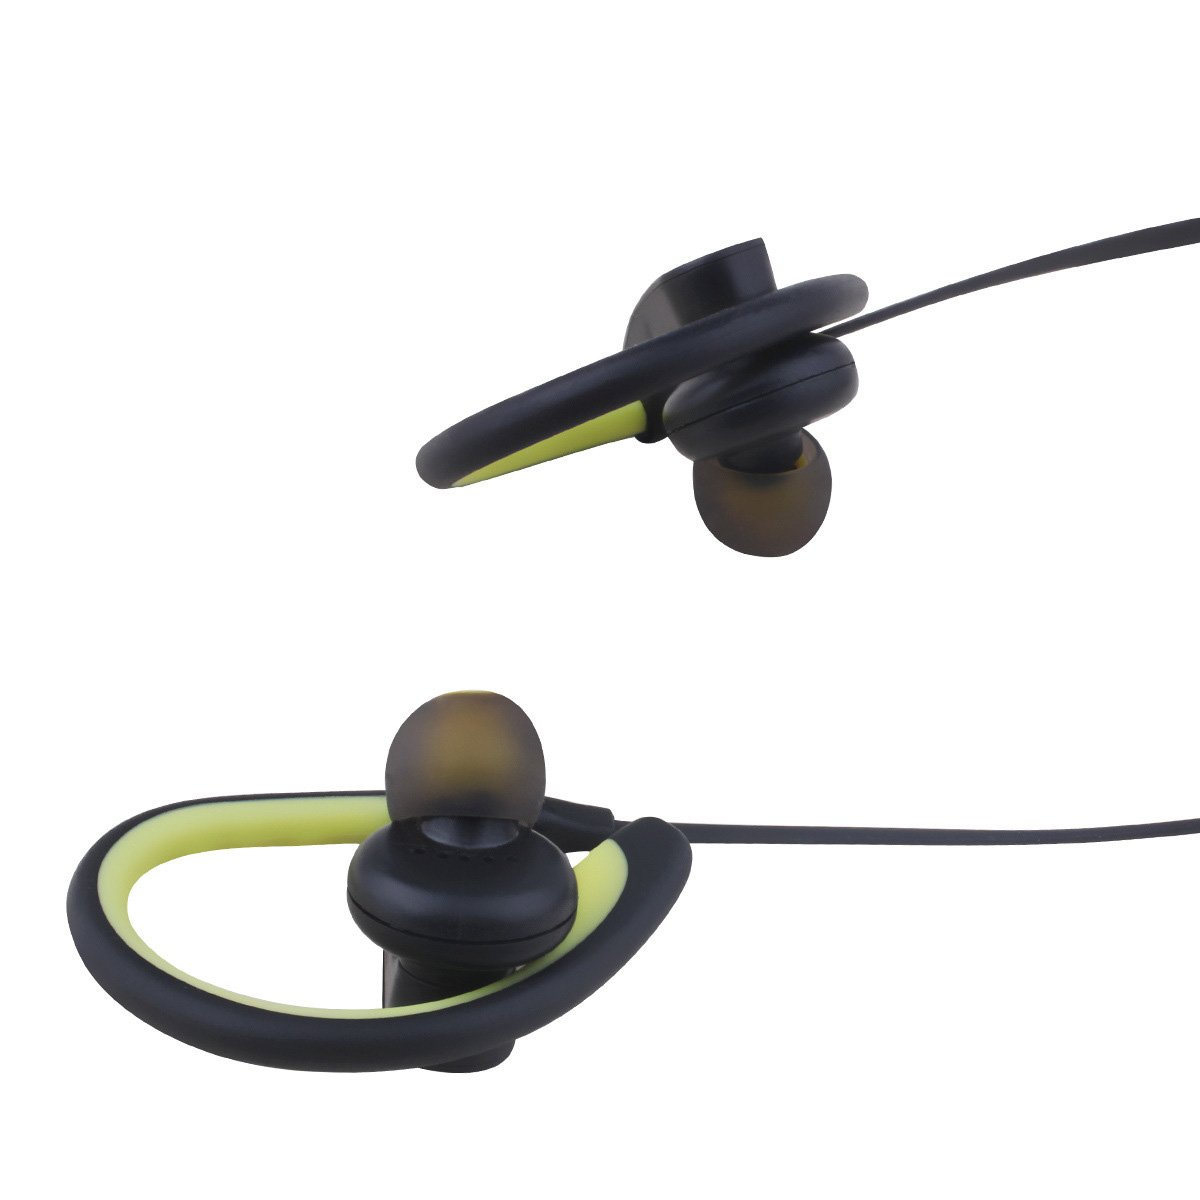 Bluetooth Headphones, Stereo Bluetooth in-Ear Earphones Sports Noise Canceling Headset Waterproof Bluetooth Earbuds for Most Smart Phones (Yellow)